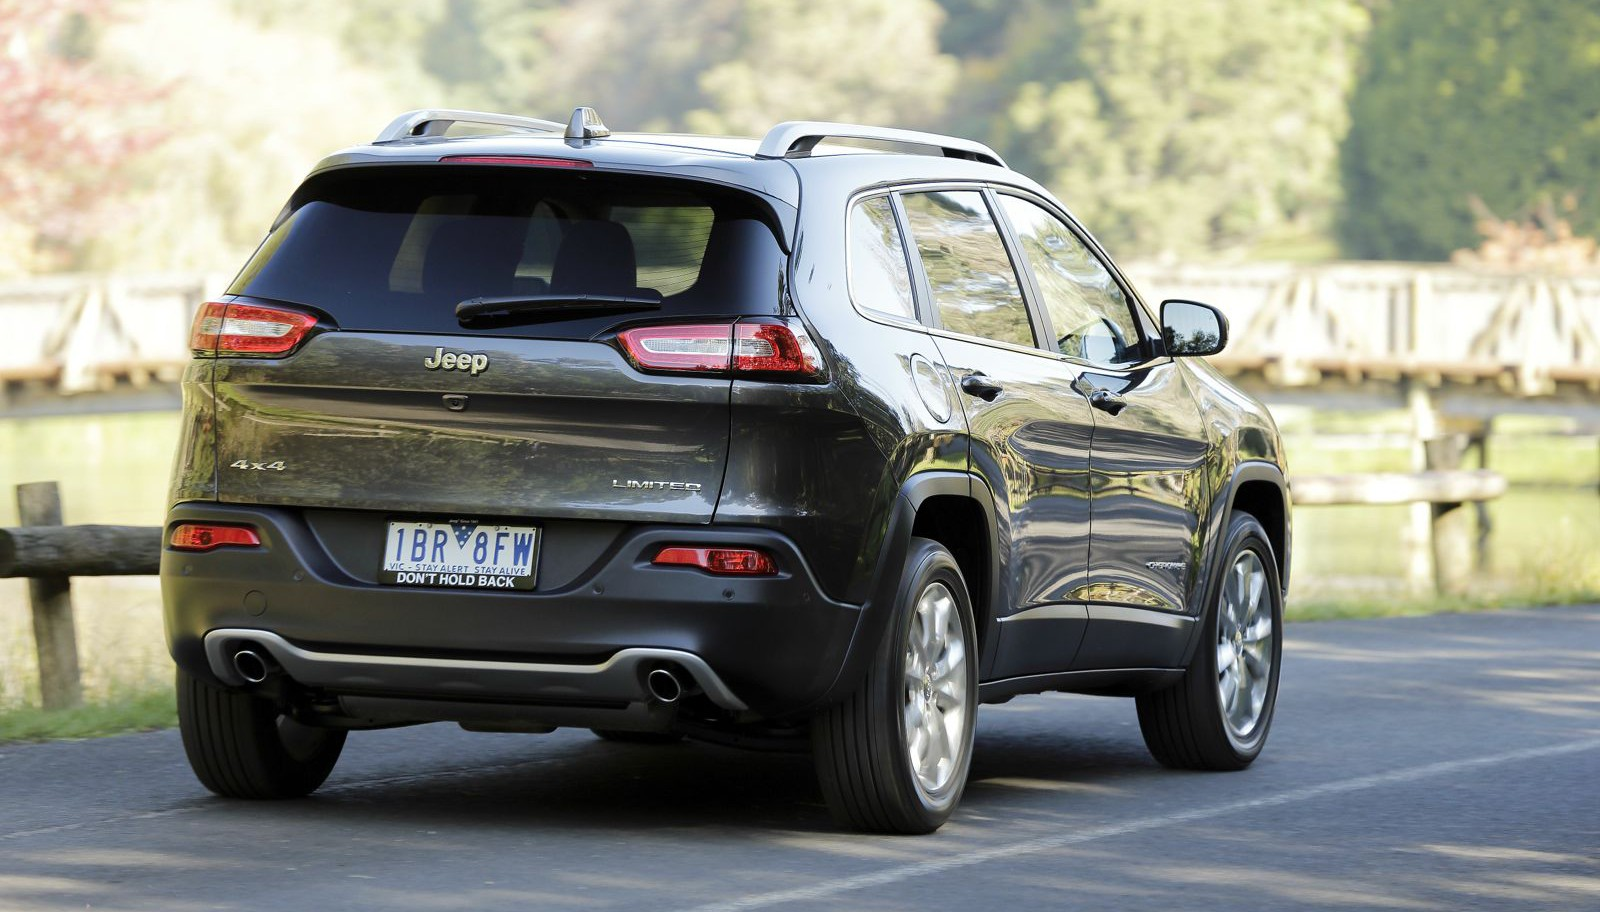 2014 jeep cherokee pricing and specifications photos 1 of 17. Cars Review. Best American Auto & Cars Review